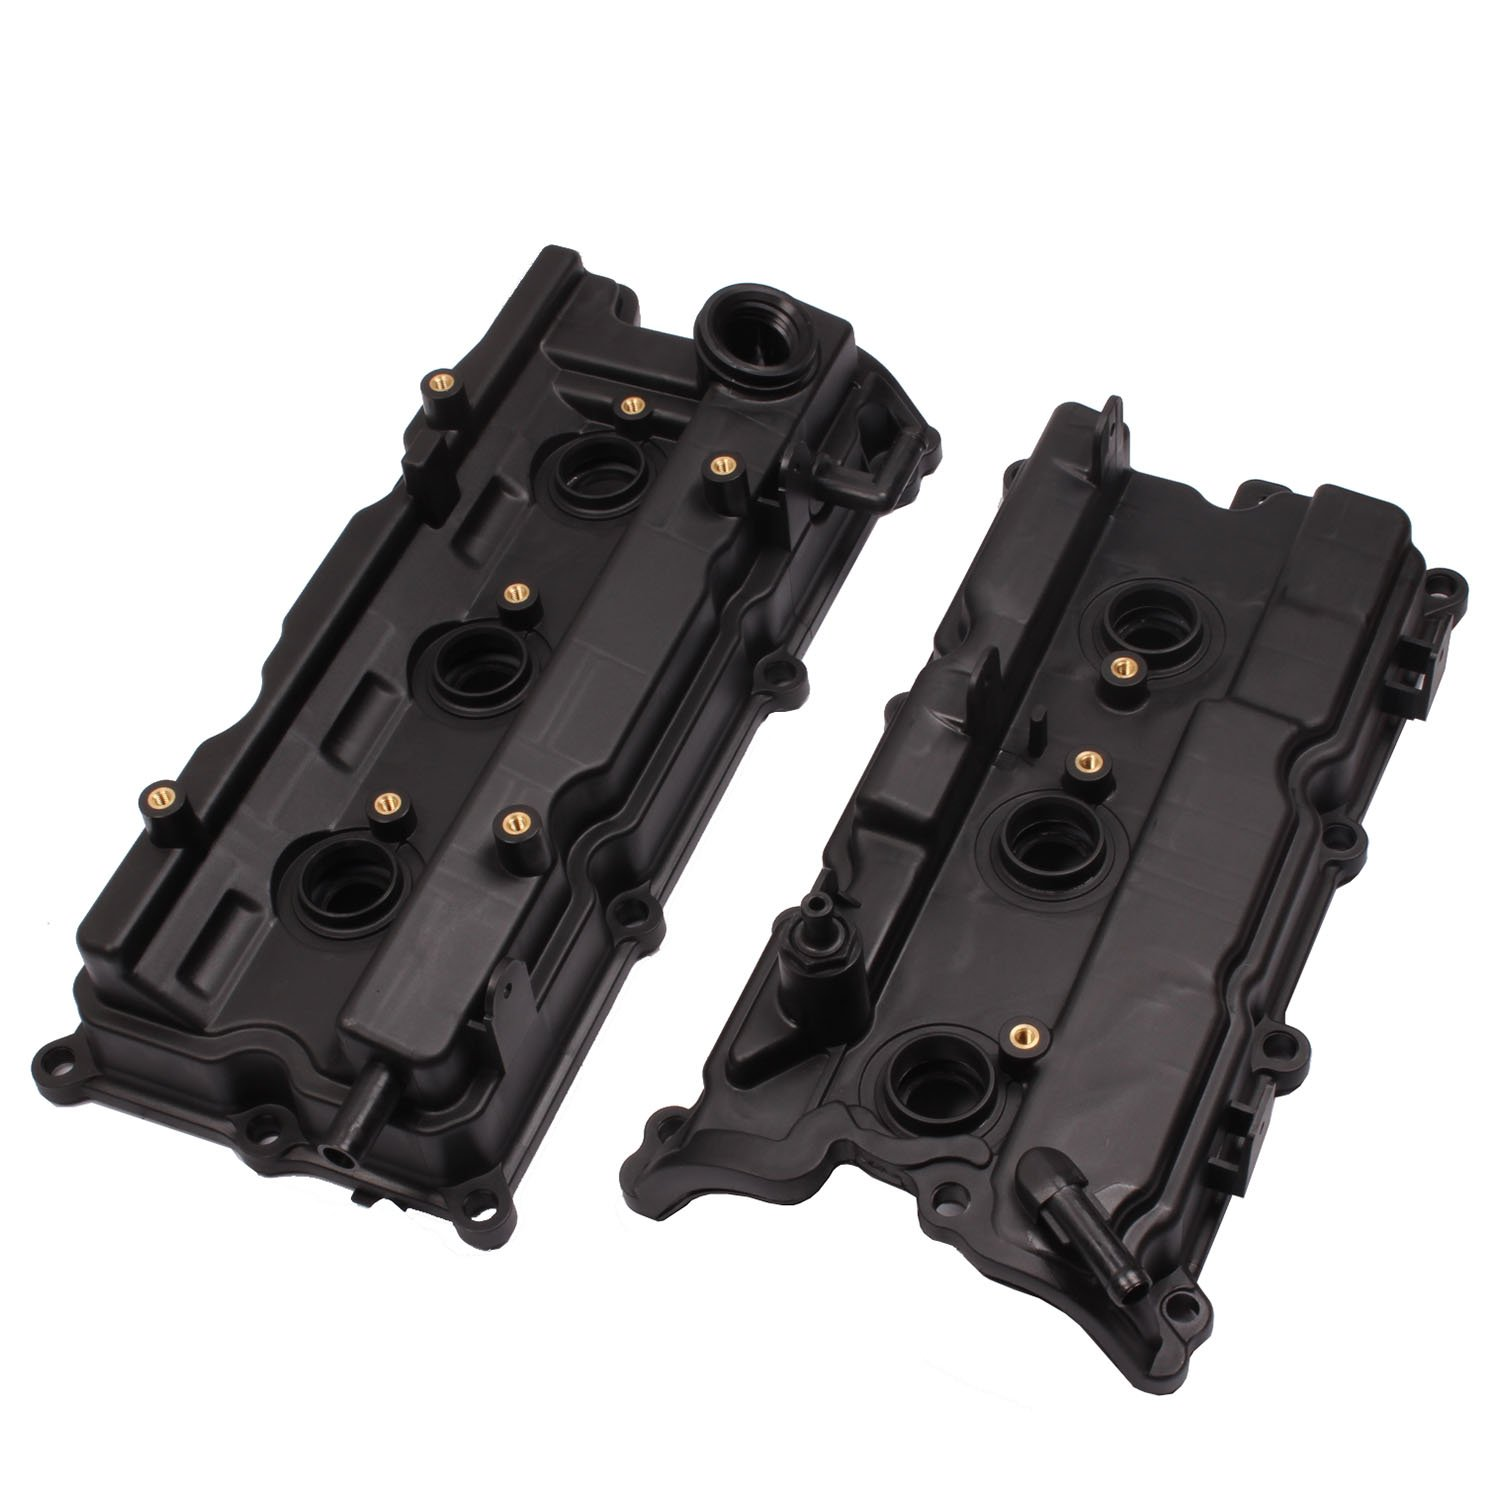 BETOOLL HW8037 Valve Cover & Gasket RIGHT & LEFT for 02-07 I35 Altima Maxima Murano 3.5L VQ35DE